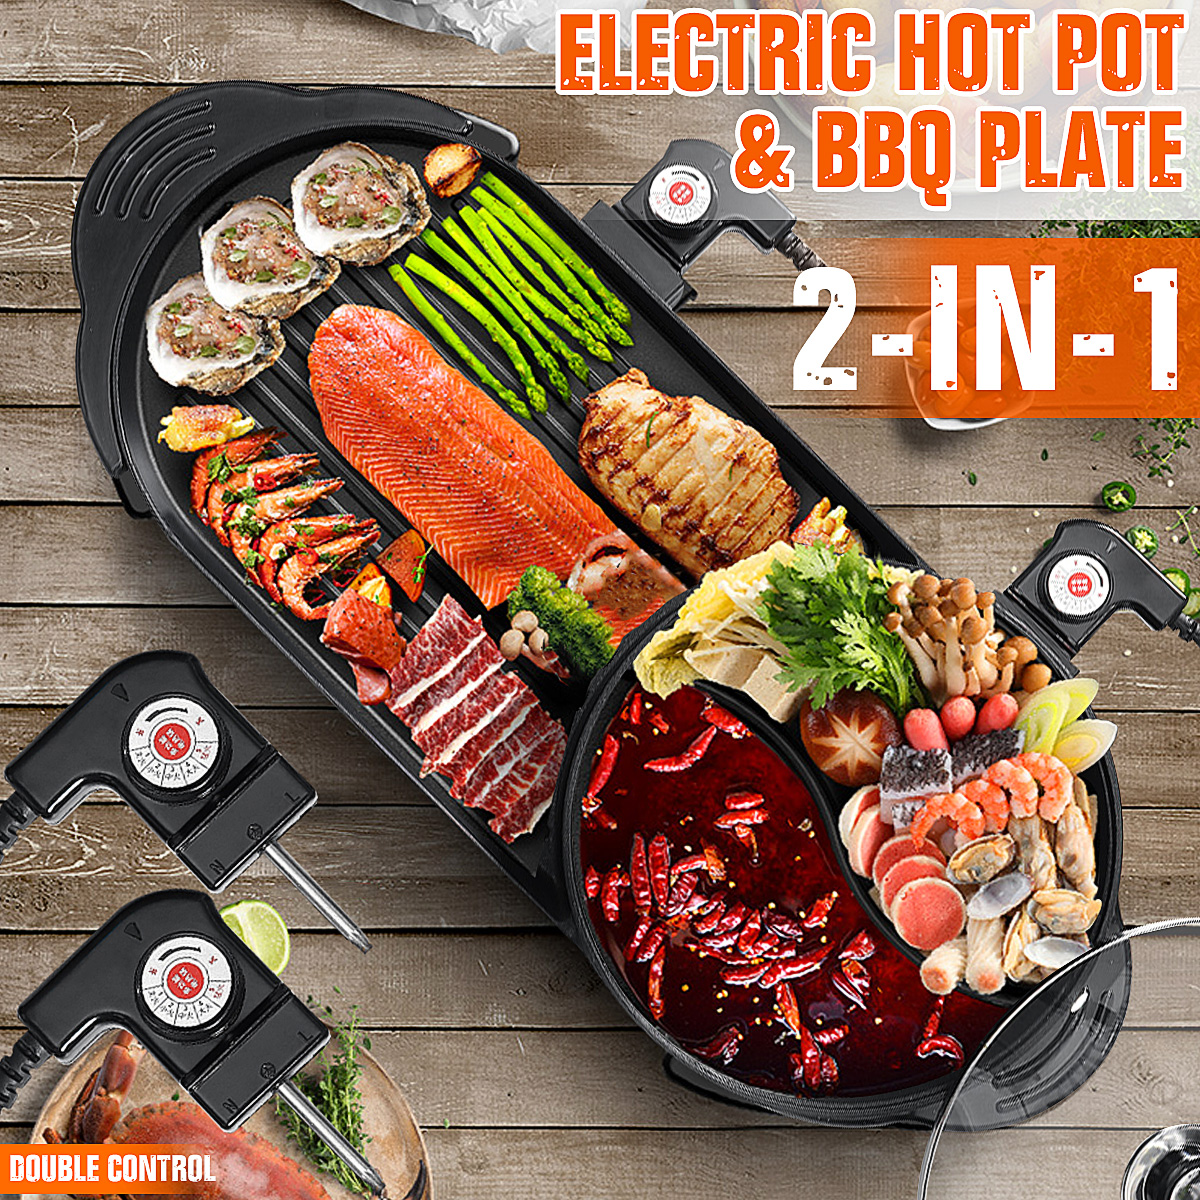 Warmtoo Larger 2 In 1 220V Electric Hot Pot Oven Smokeless Barbecue Machine Home BBQ Grills Indoor Roast Meat Equipment